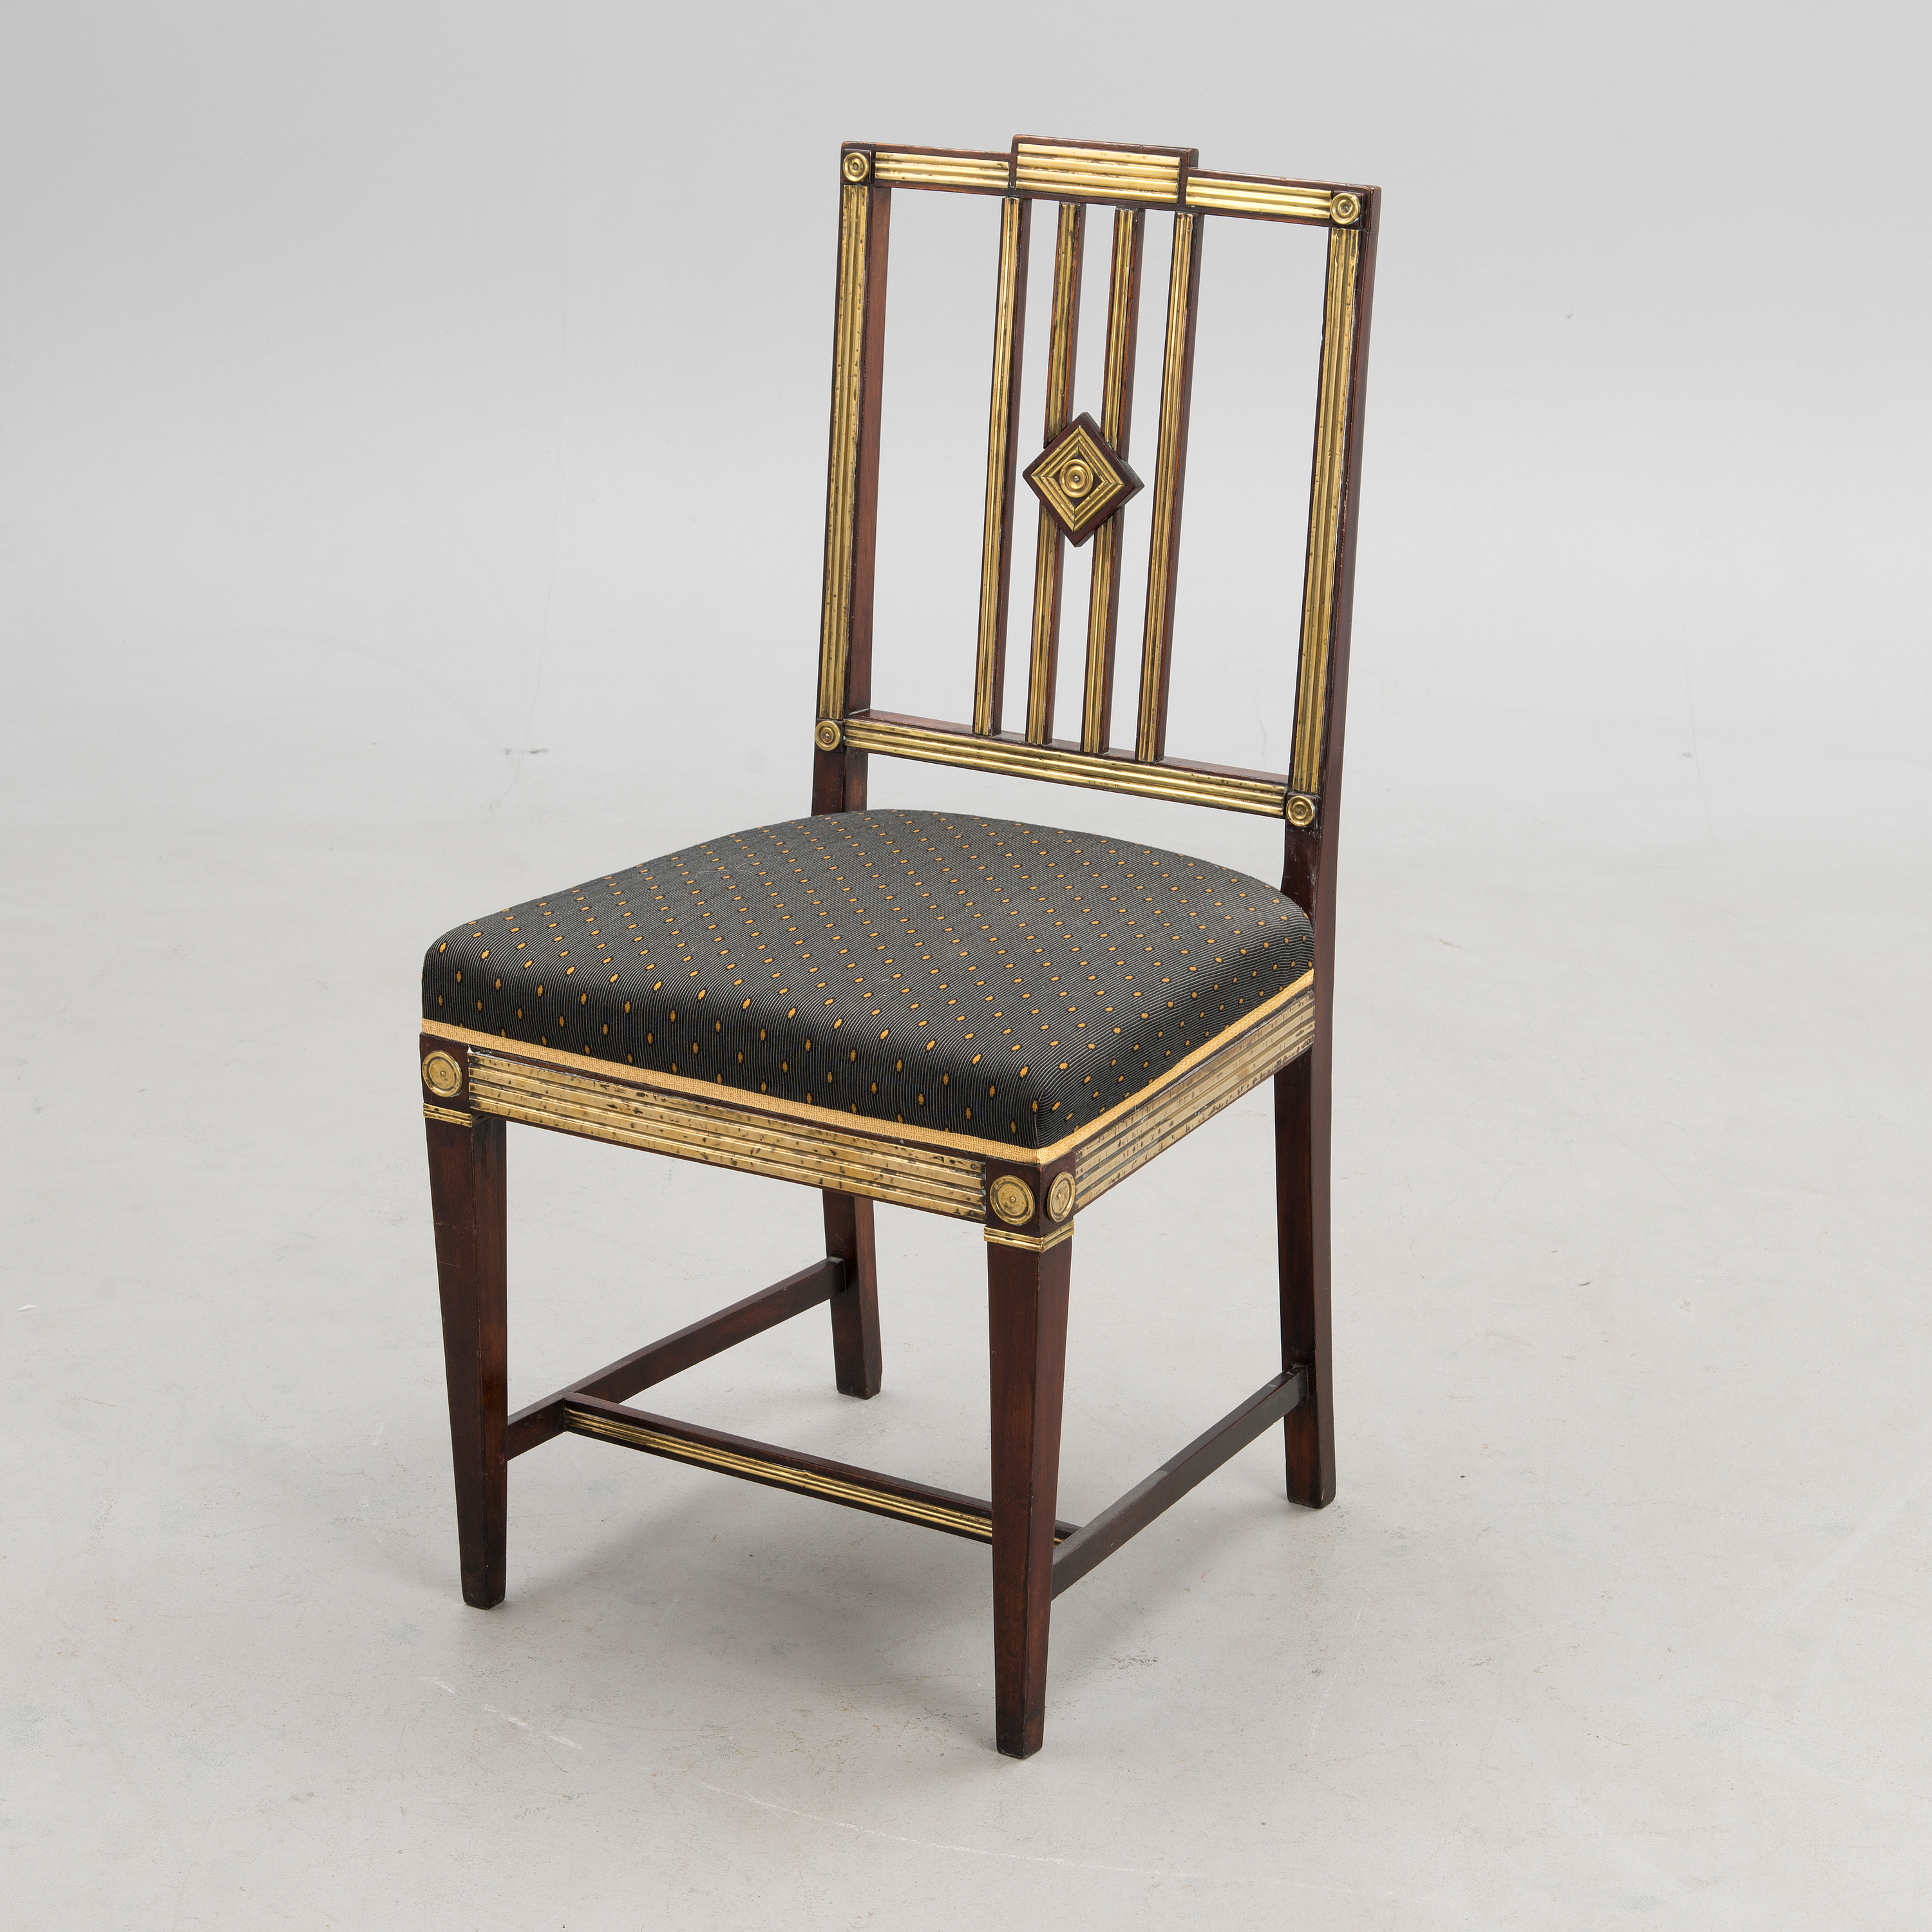 & Russian late 19th century Jacob style Chair. - Bukowskis